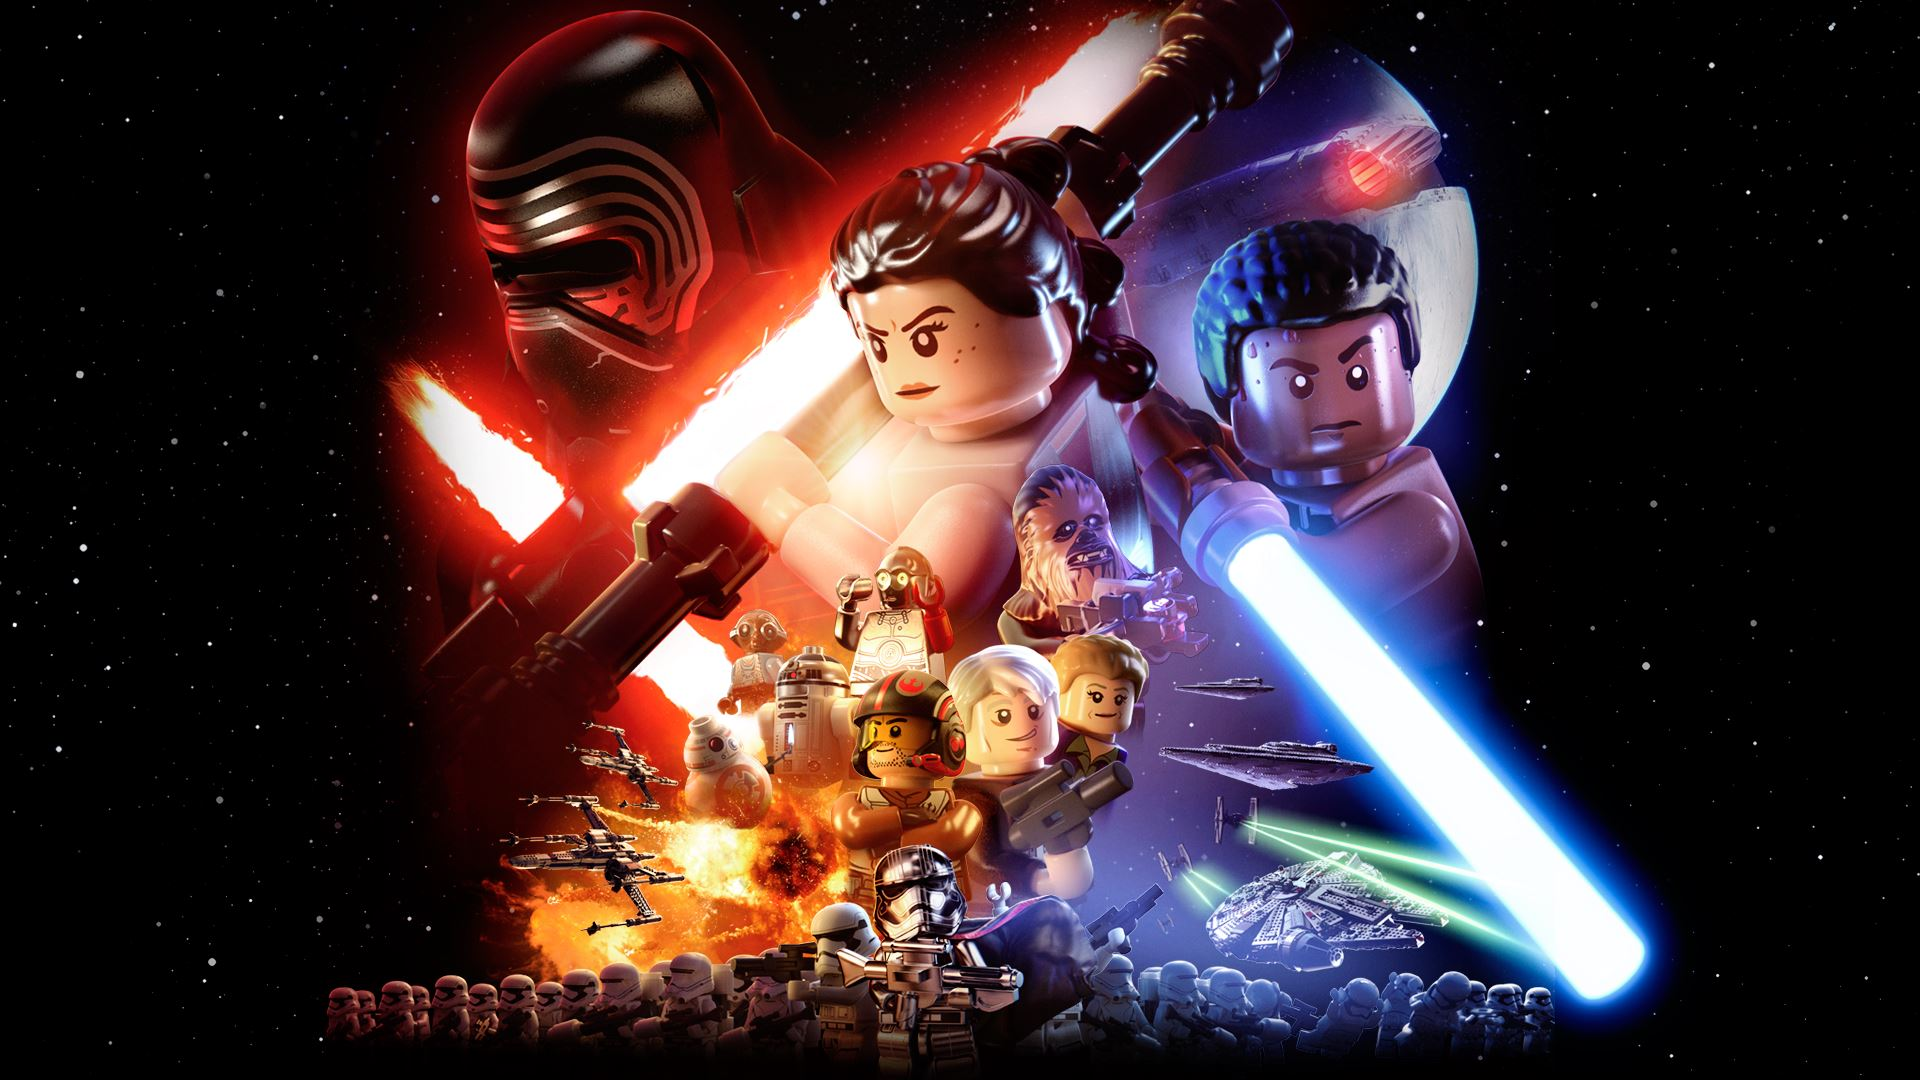 LEGO Star Wars The Force Awakens Full HD Wallpaper And Background